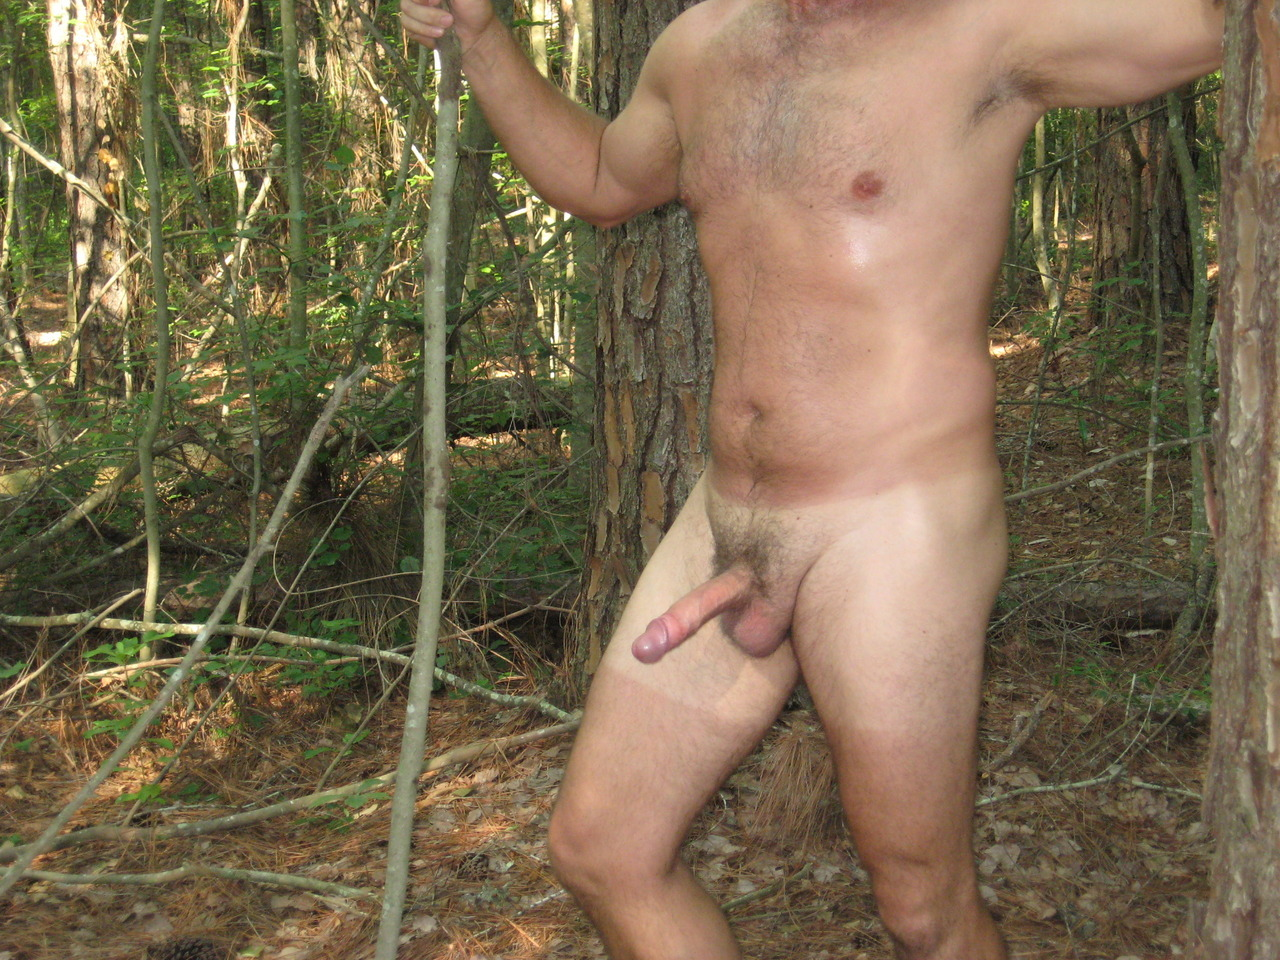 woods Boys naked in